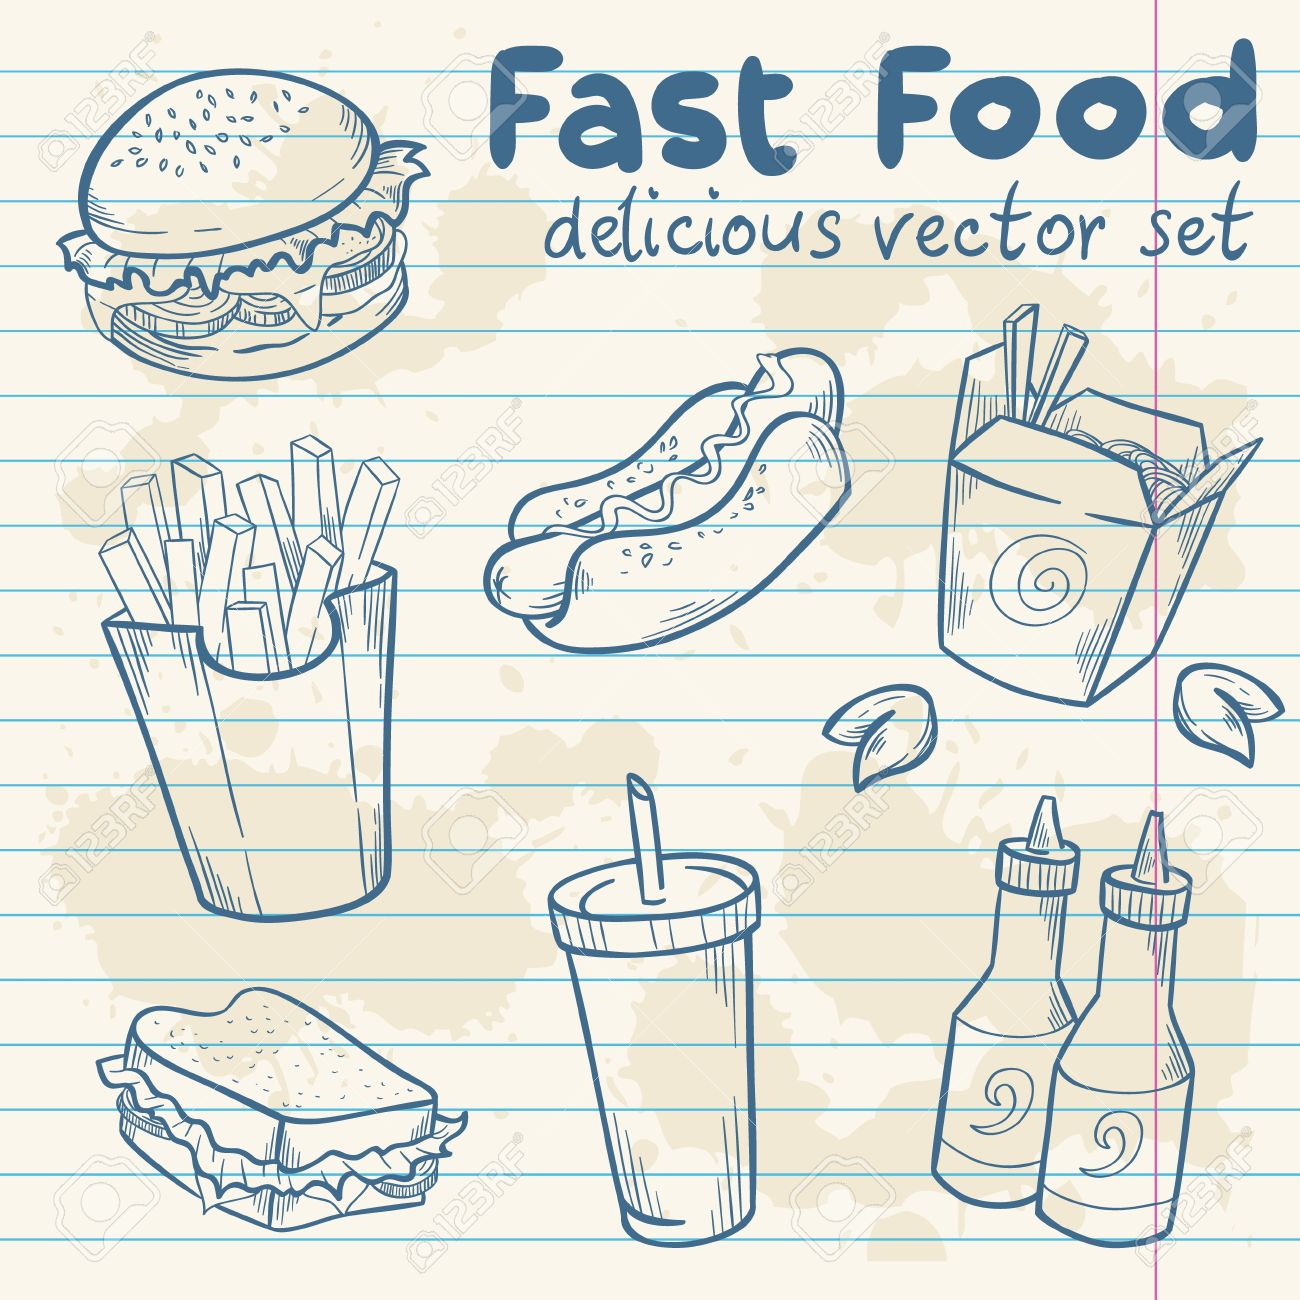 hot dog fastfood delicious hand drawn vector set with burger hot dog and french